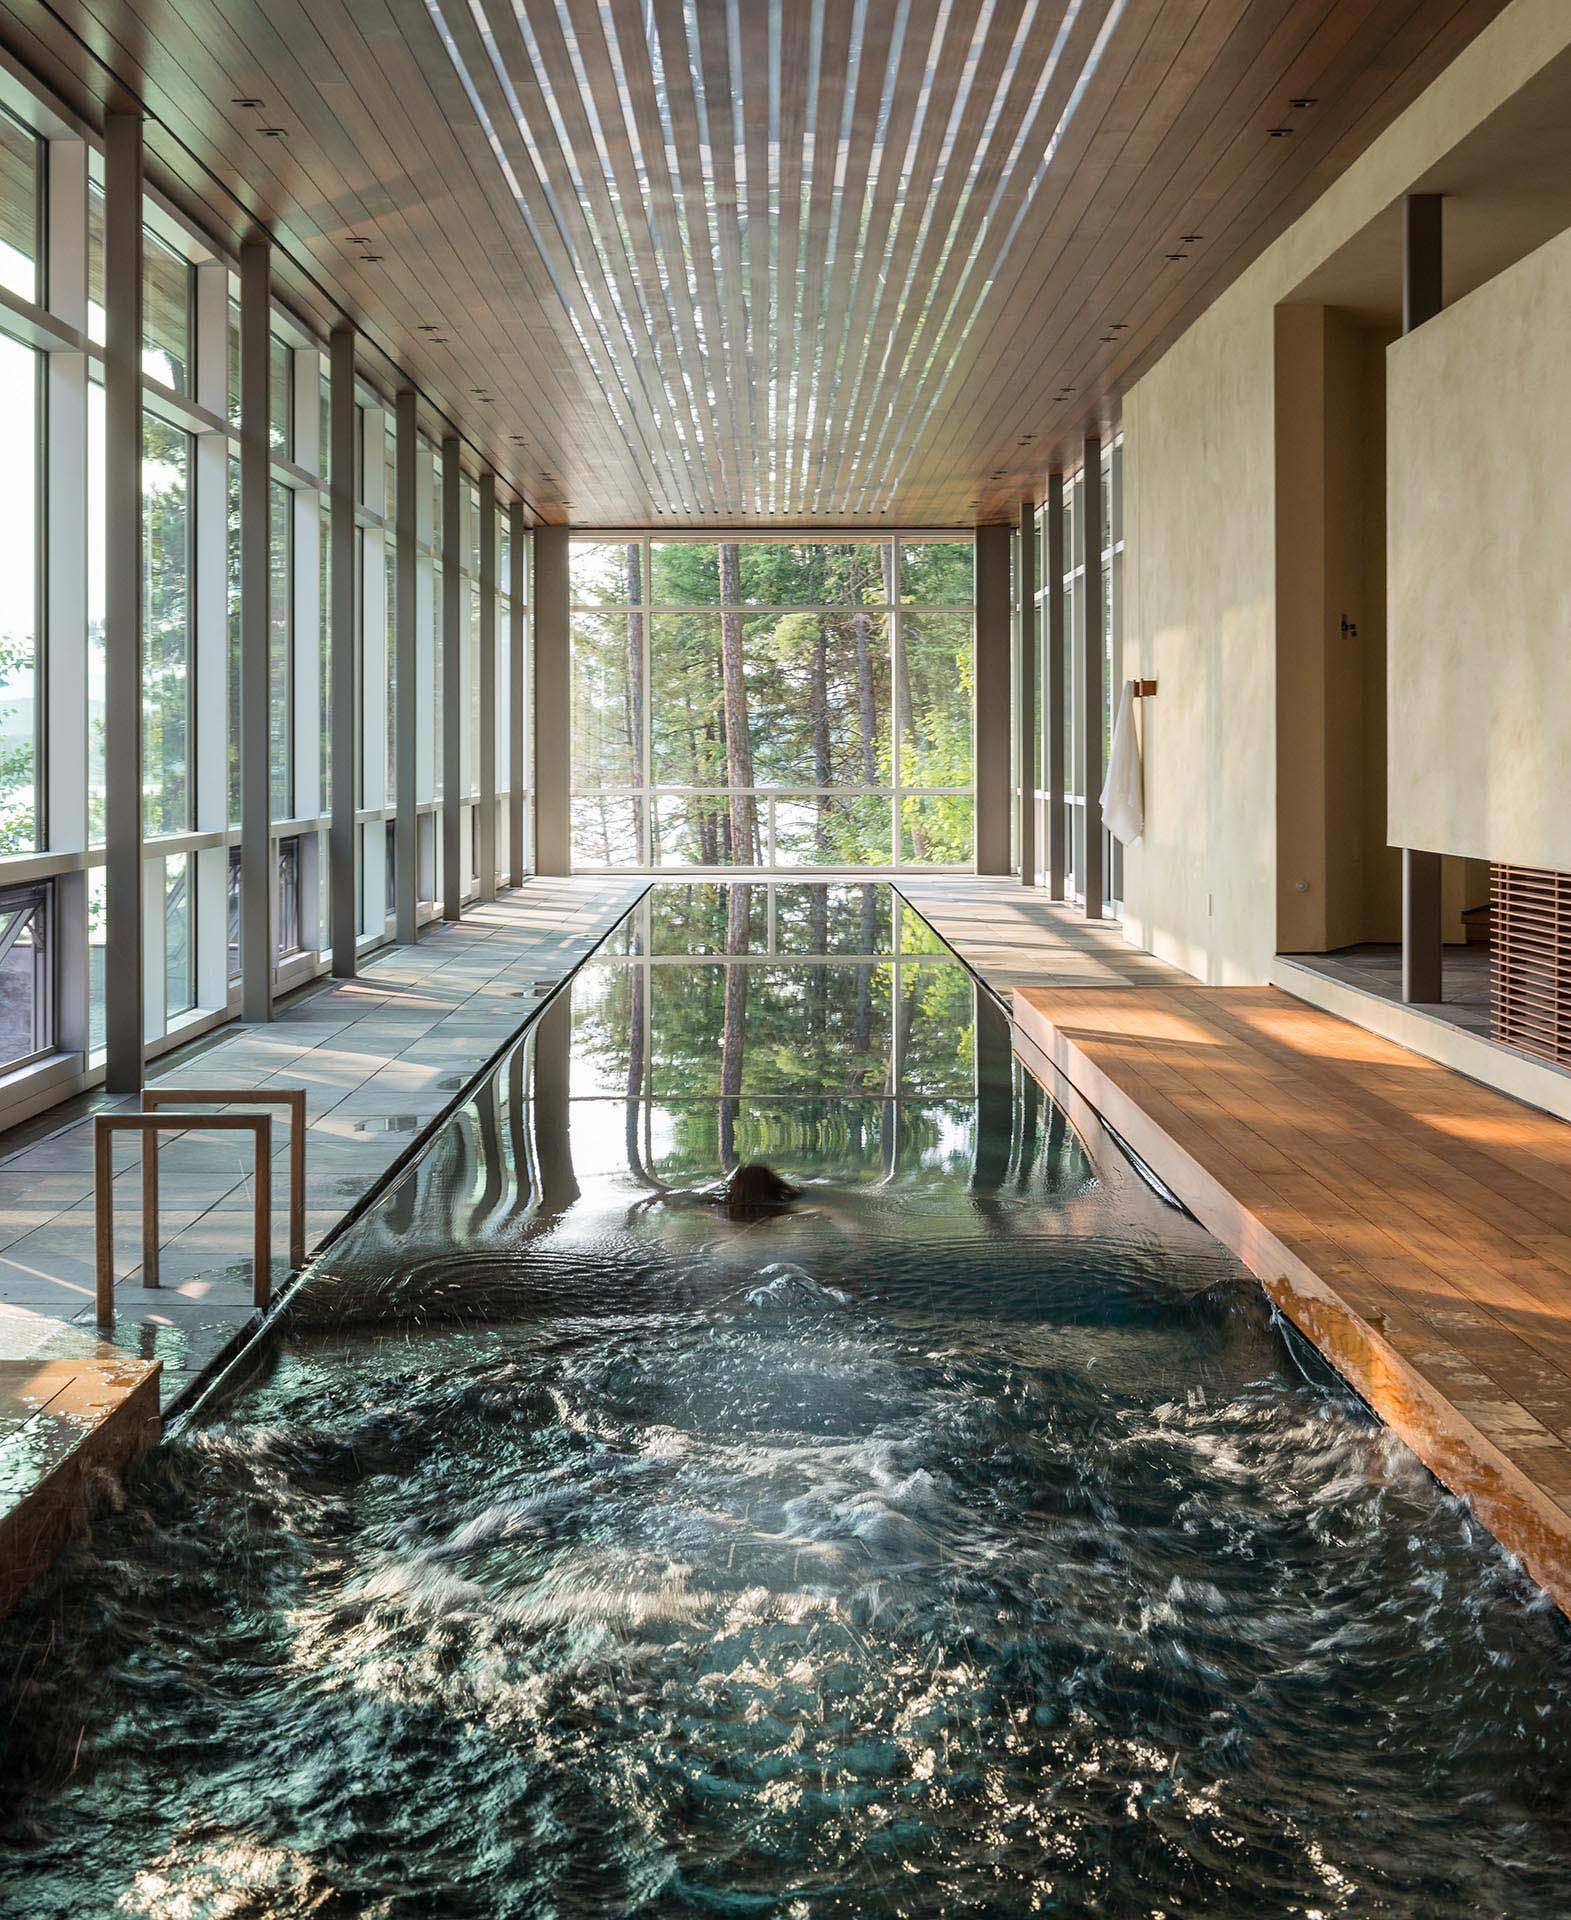 A 75-foot-long, single-lane lap pool is naturally lit by the floor to ceiling windows during the day.